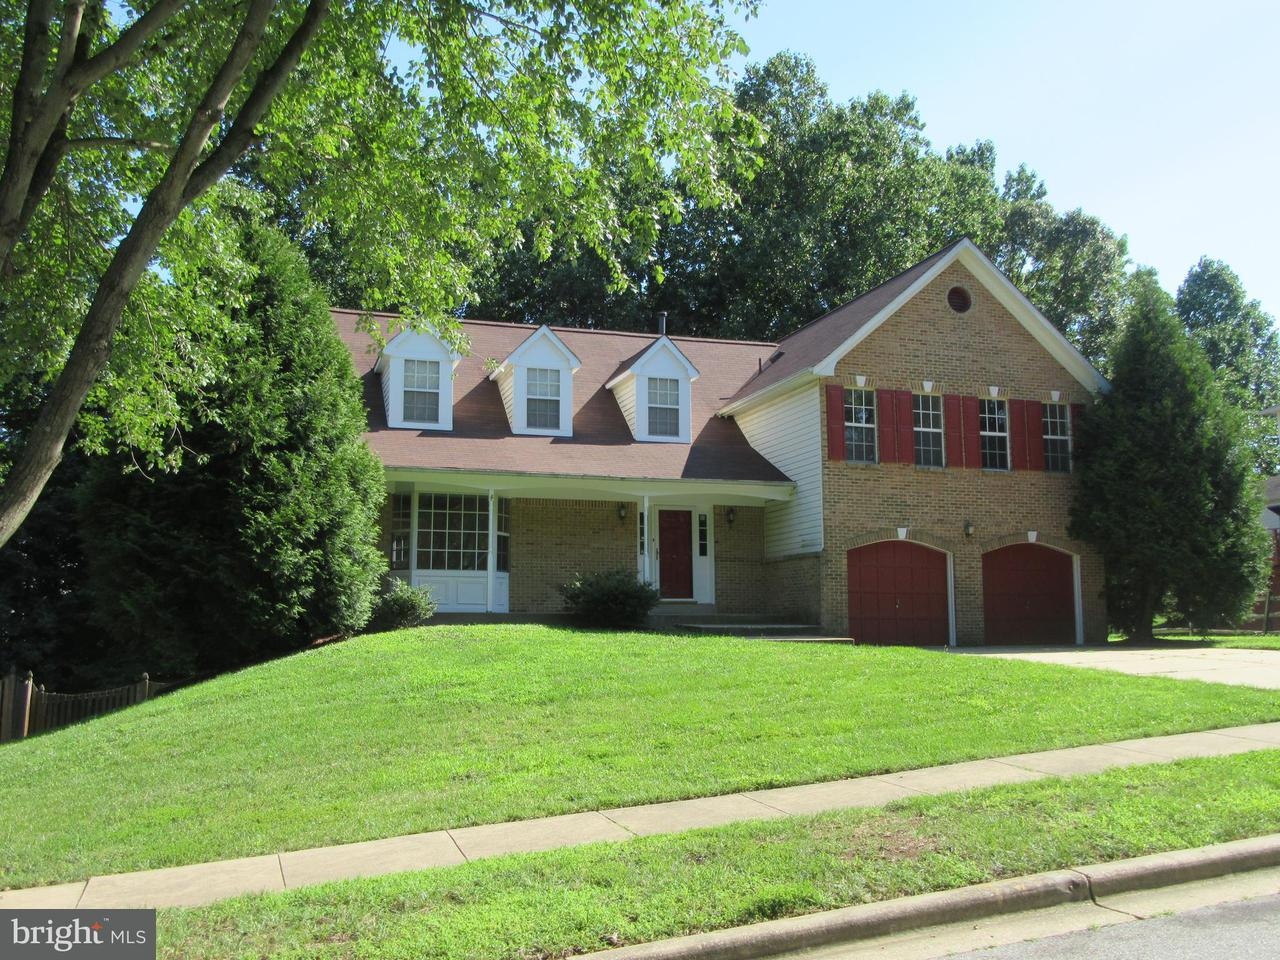 Single Family Home for Sale at 13503 ARROWWOOD Lane 13503 ARROWWOOD Lane Bowie, Maryland 20715 United States